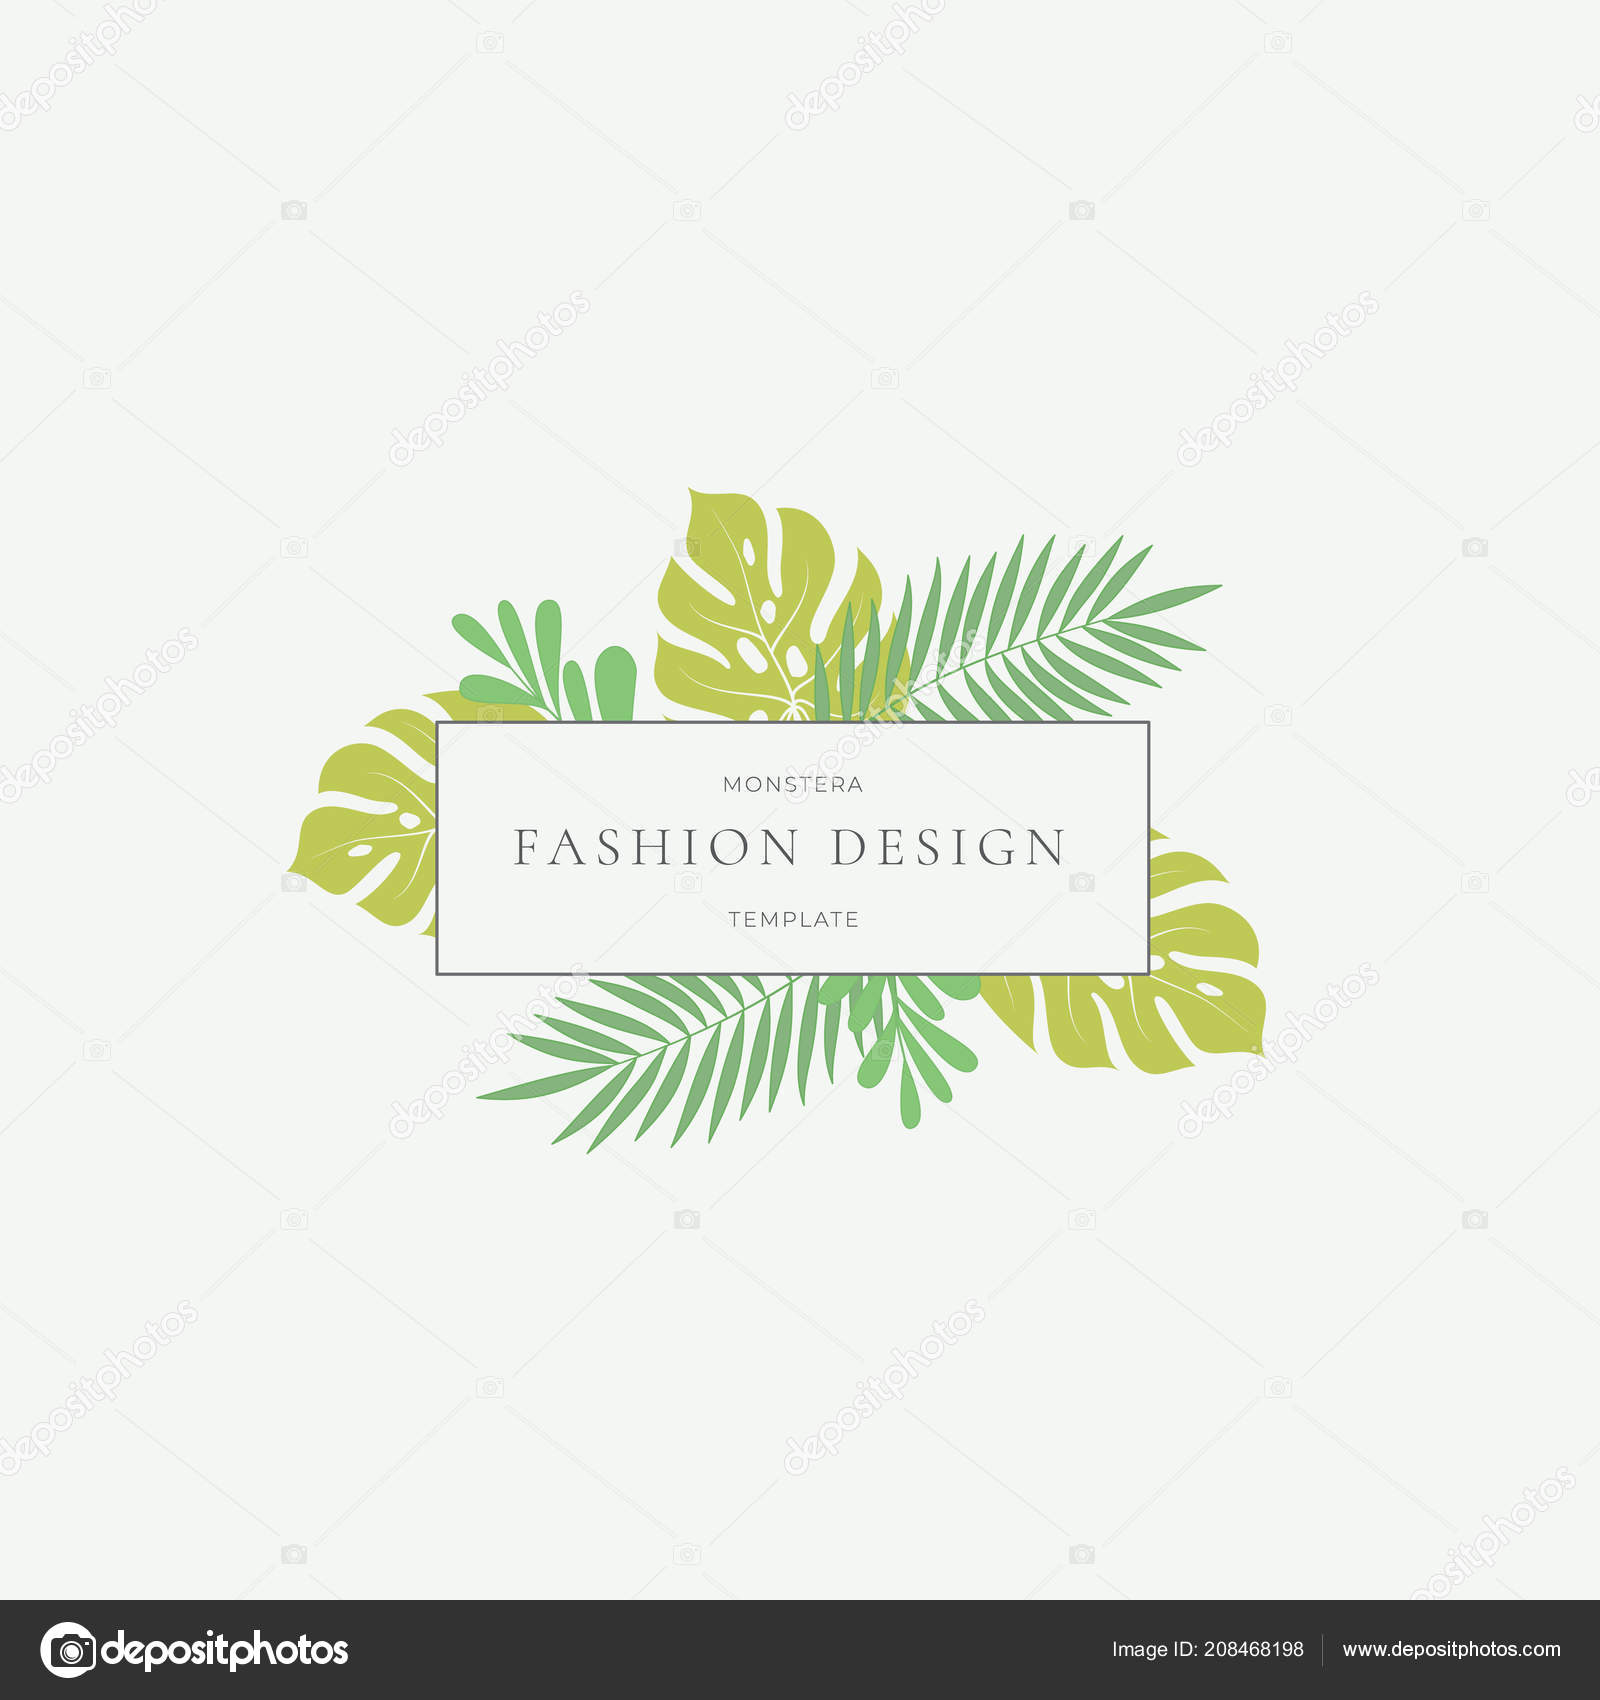 Monstera Tropical Leaves Fashion Sign Or Logo Template Abstract Green Foliage With Rectangle Border And Classy Typography Pastel Colors Stock Vector C Createvil 208468198 It's the tropical leaves earrings. https depositphotos com 208468198 stock illustration monstera tropical leaves fashion sign html